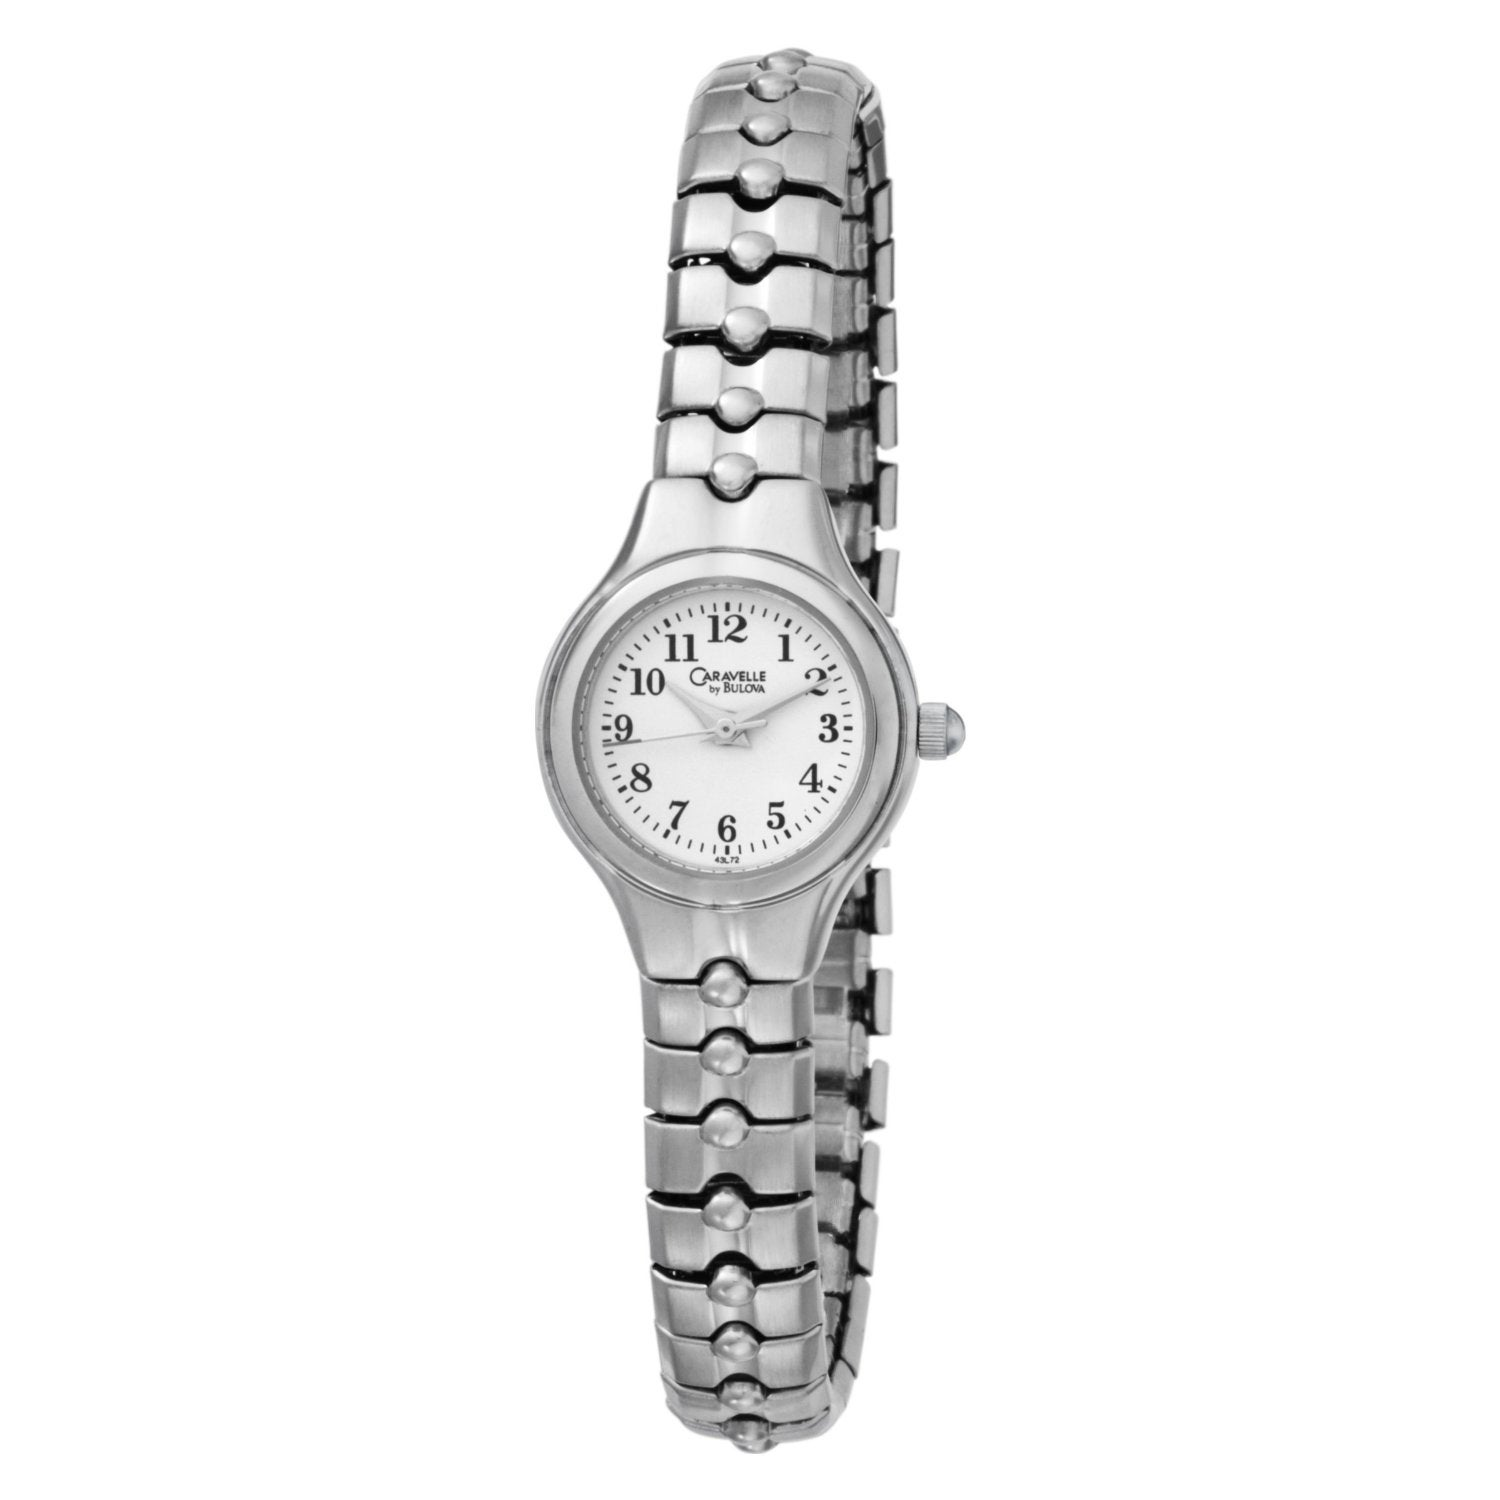 Bulova Women's 'Caravelle' Watch